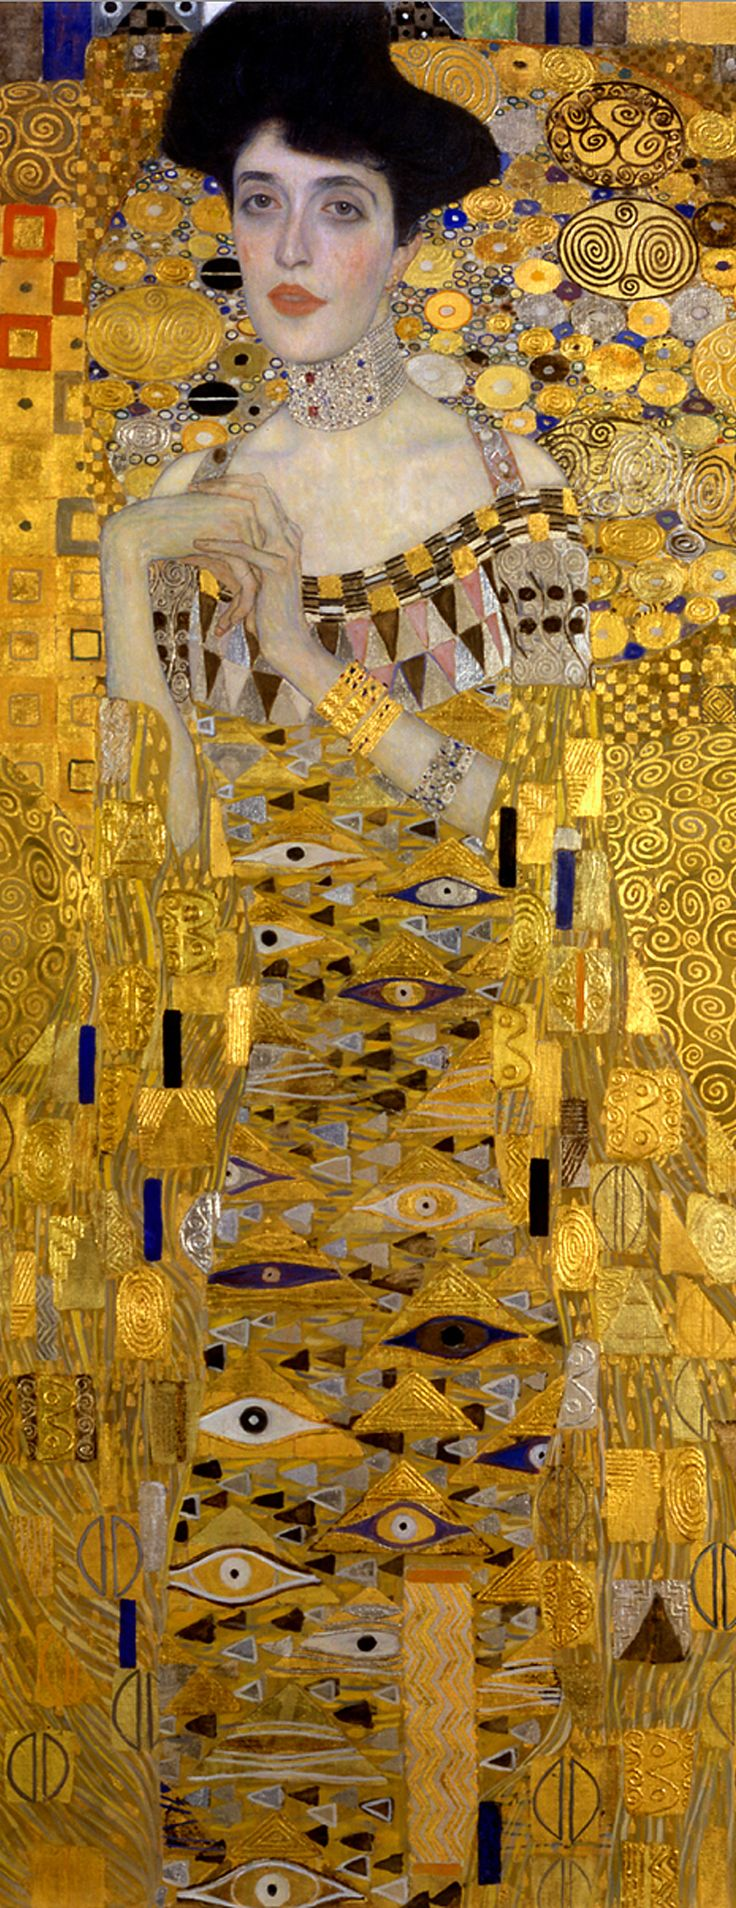 """Adele Bloch-Bauer I"" (1907, Wien). DETAIL: Paintings inside paintings. Studded with precious metals. Opulent patchwork of ornaments, where Mycenaean gold mingles with Byzantium. Creating the overall impression of a religious idol. This is Klimt's expression of the decadent, morbid passion for jewelry. However, the triumph of this goddess is also her prison, captured in her precious tapestries, sealed alive inside a wall of gems."